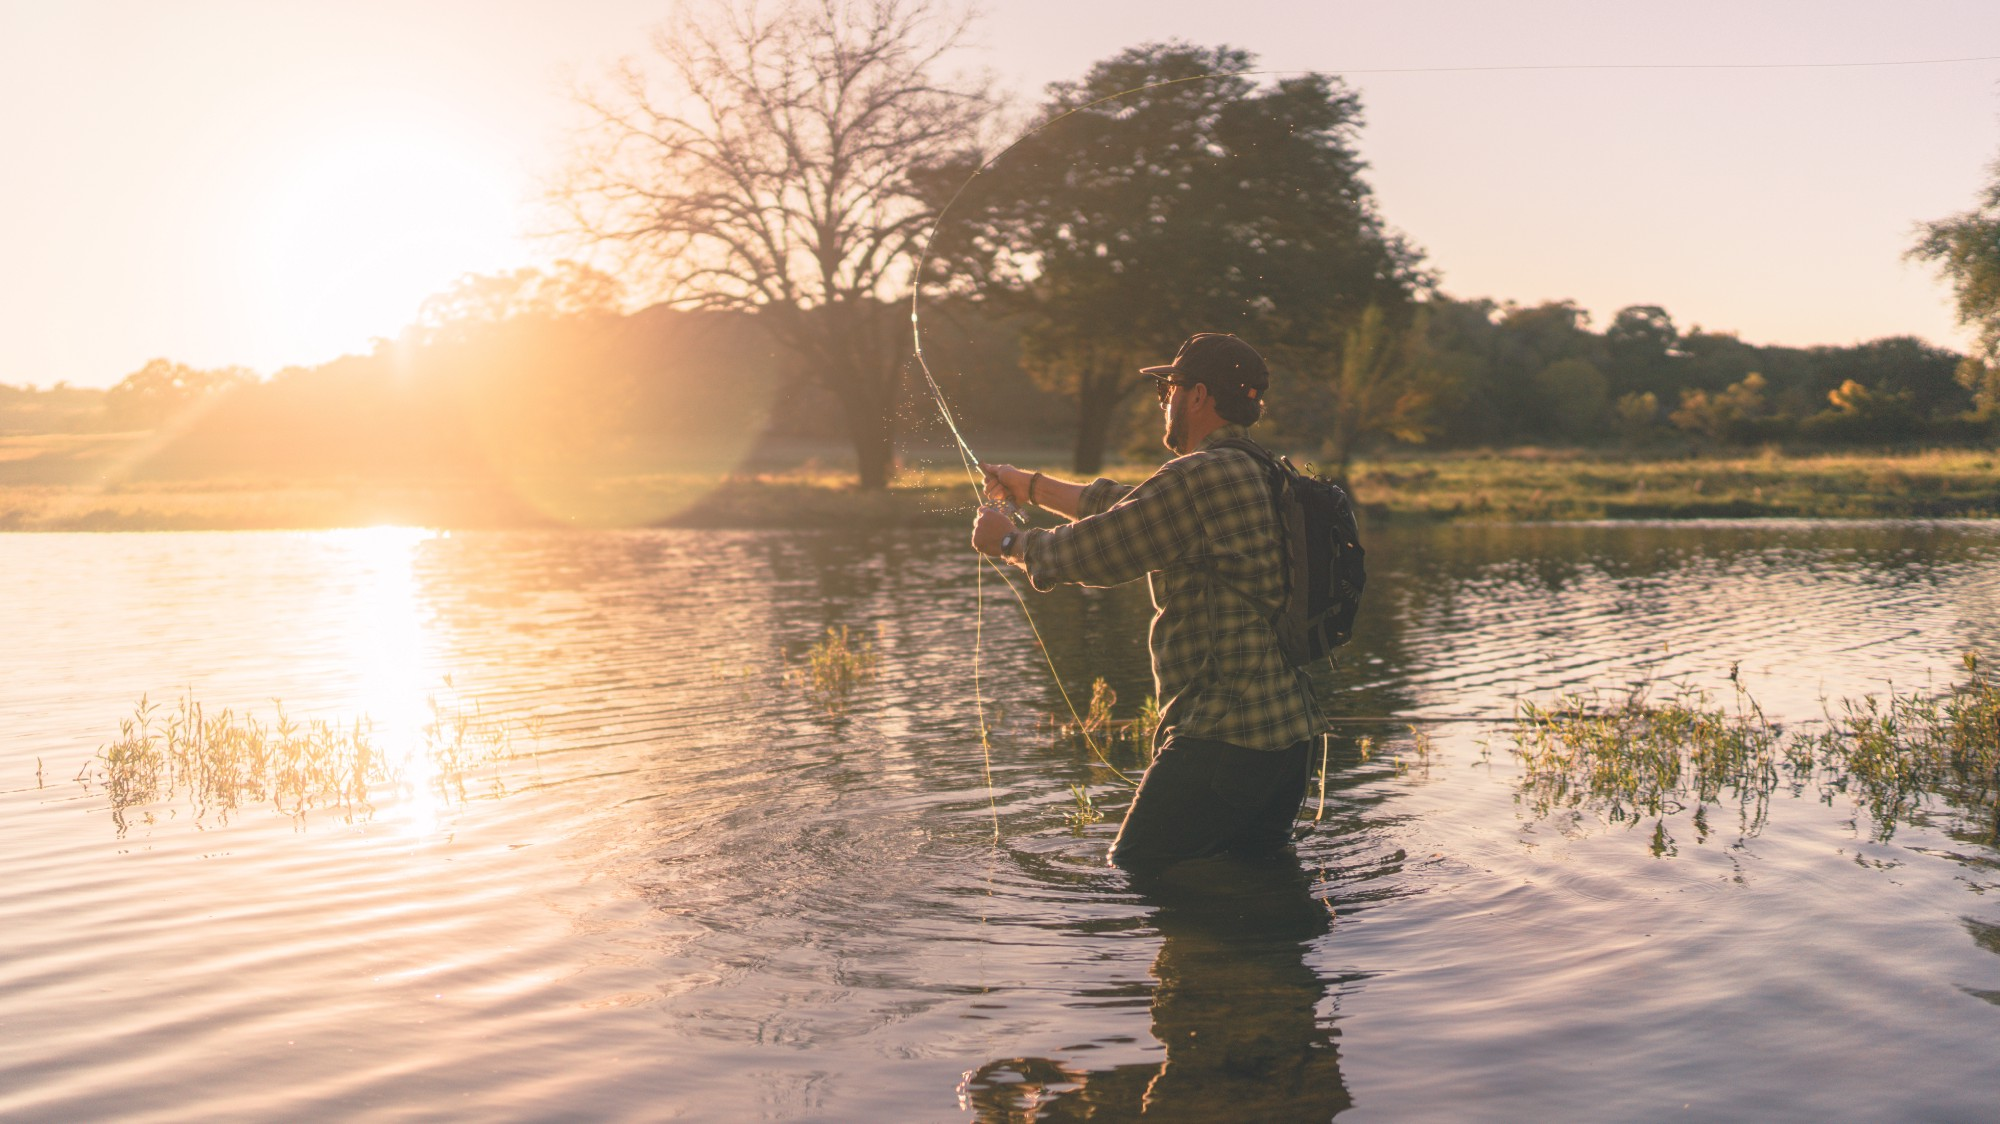 A man fishing while the sun is rising